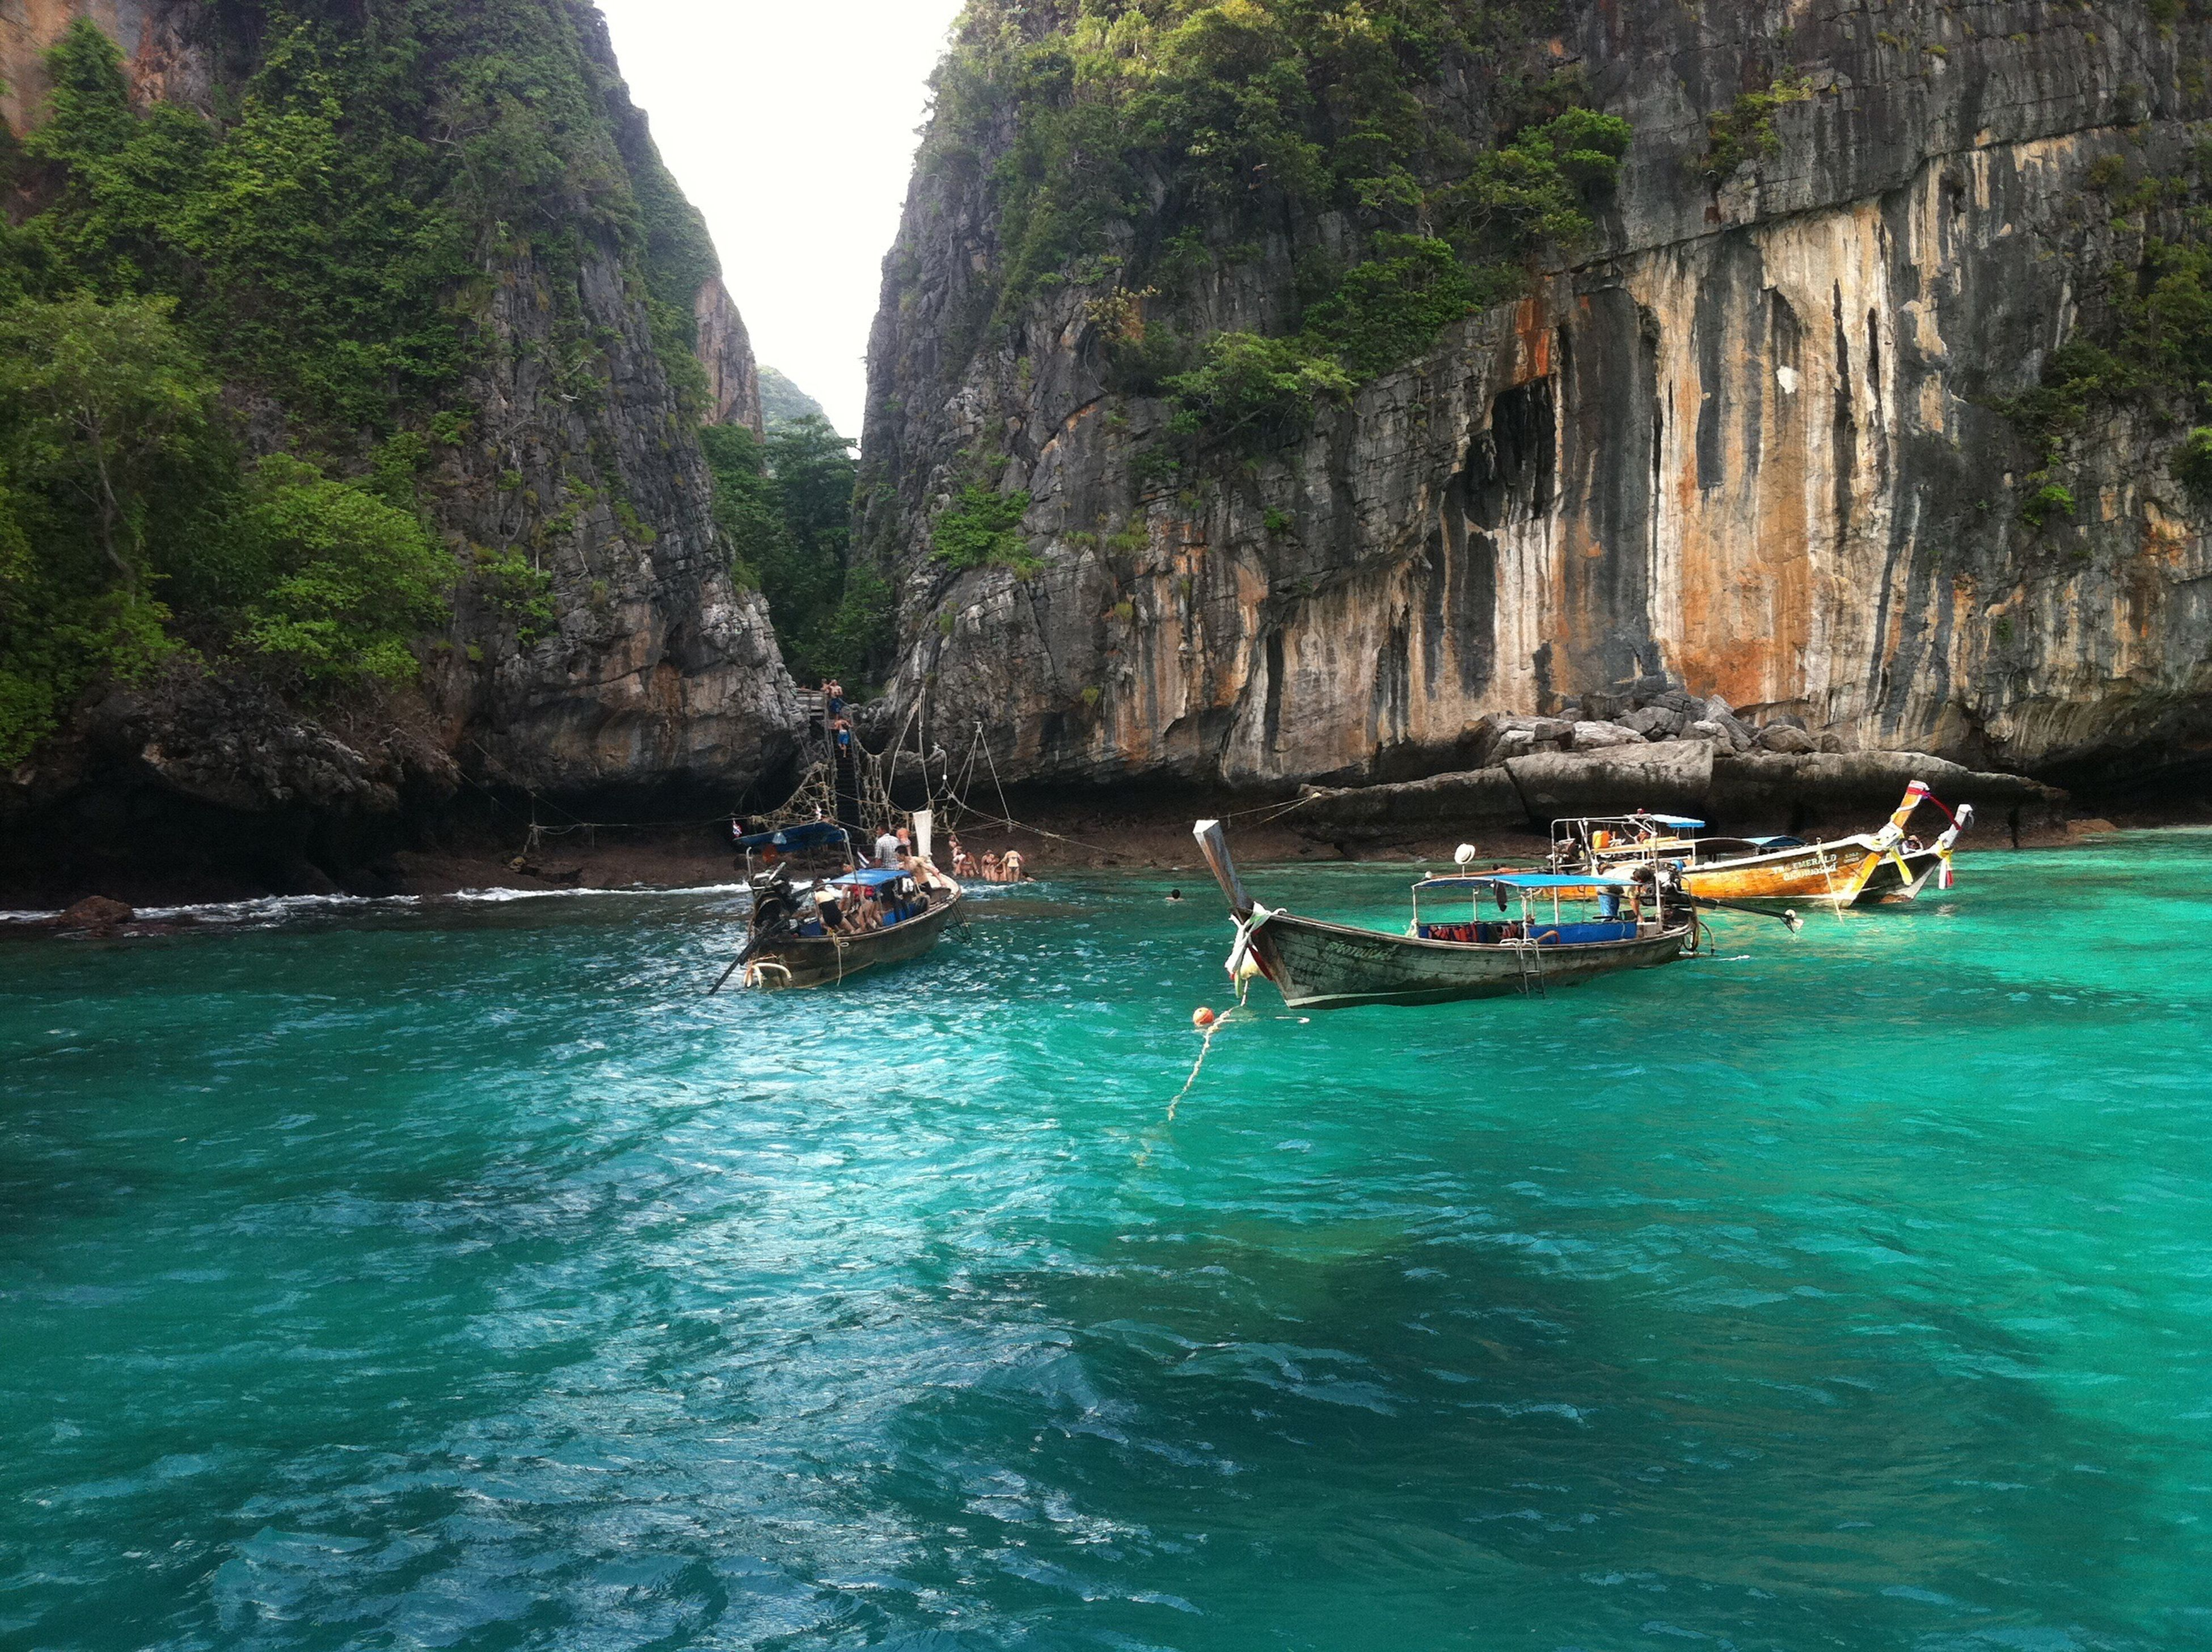 water, nautical vessel, boat, waterfront, mode of transport, tree, mountain, tranquil scene, tranquility, beauty in nature, scenics, nature, rock formation, blue, rippled, idyllic, vacations, sailing, day, outdoors, turquoise colored, tourism, travel destinations, sky, non-urban scene, non urban scene, remote